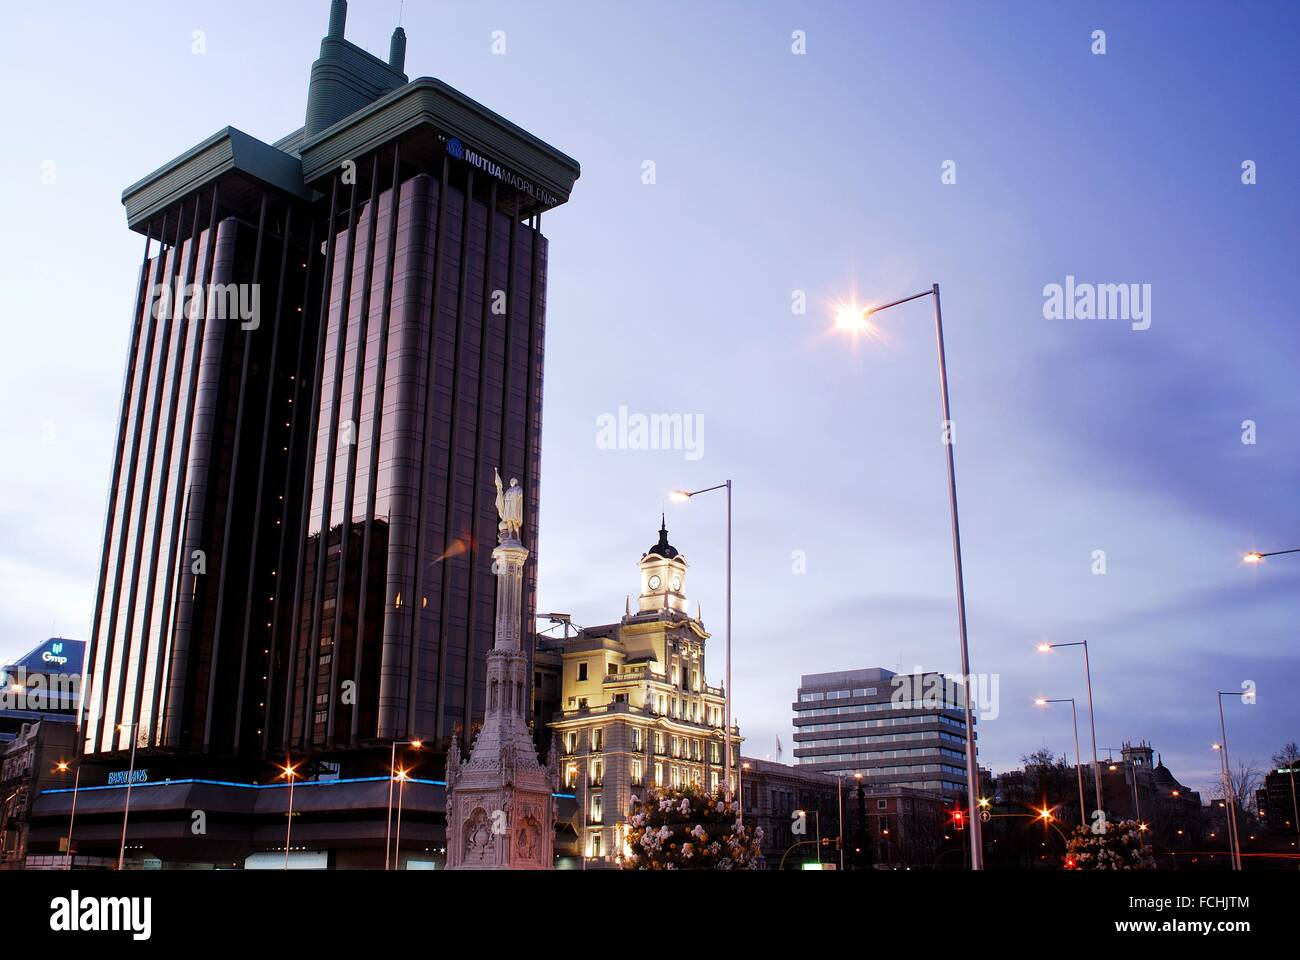 Colon towers between Castellana and Recoletos promenades in Madrid, Spain. - Stock Image